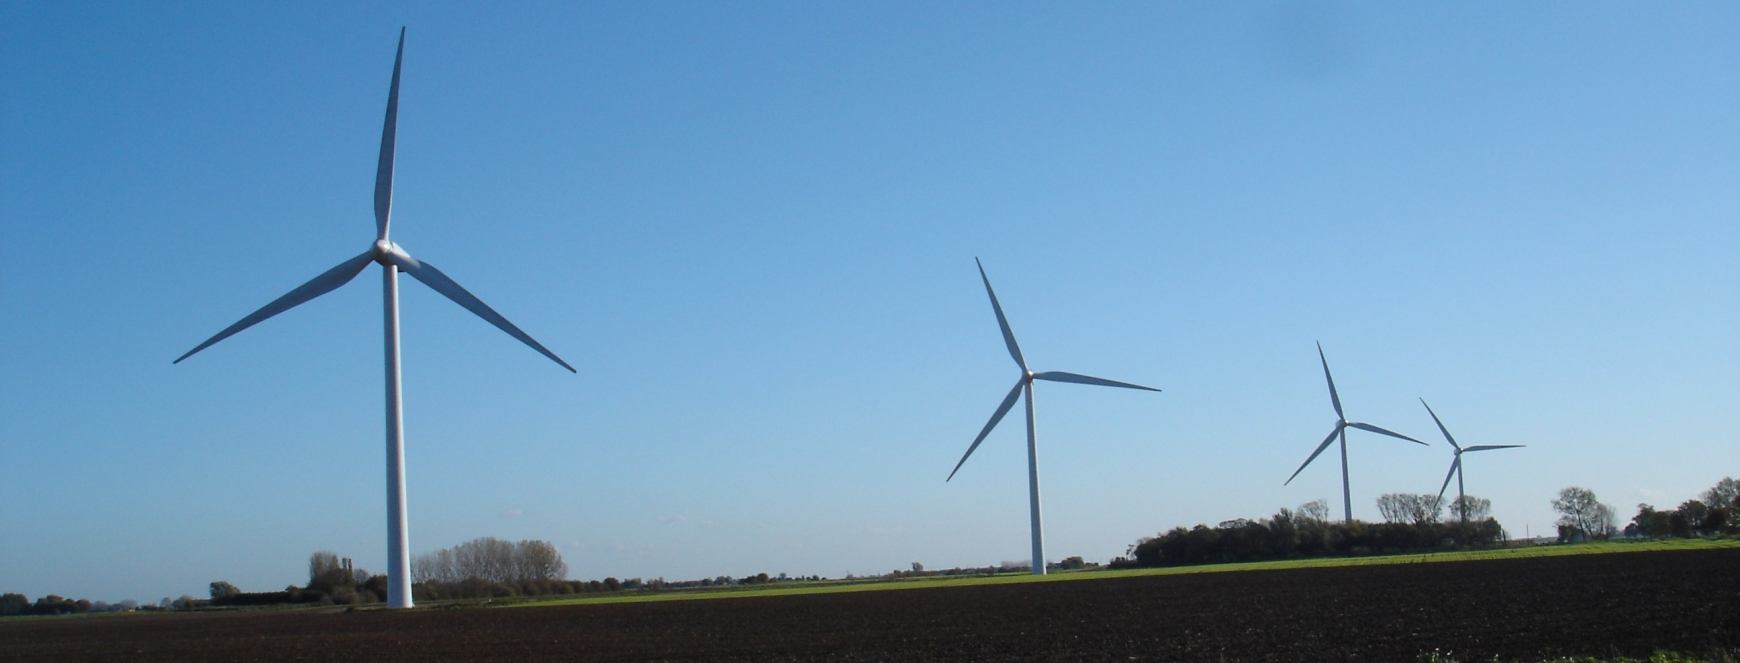 Four wind turbines in a field with blue sky